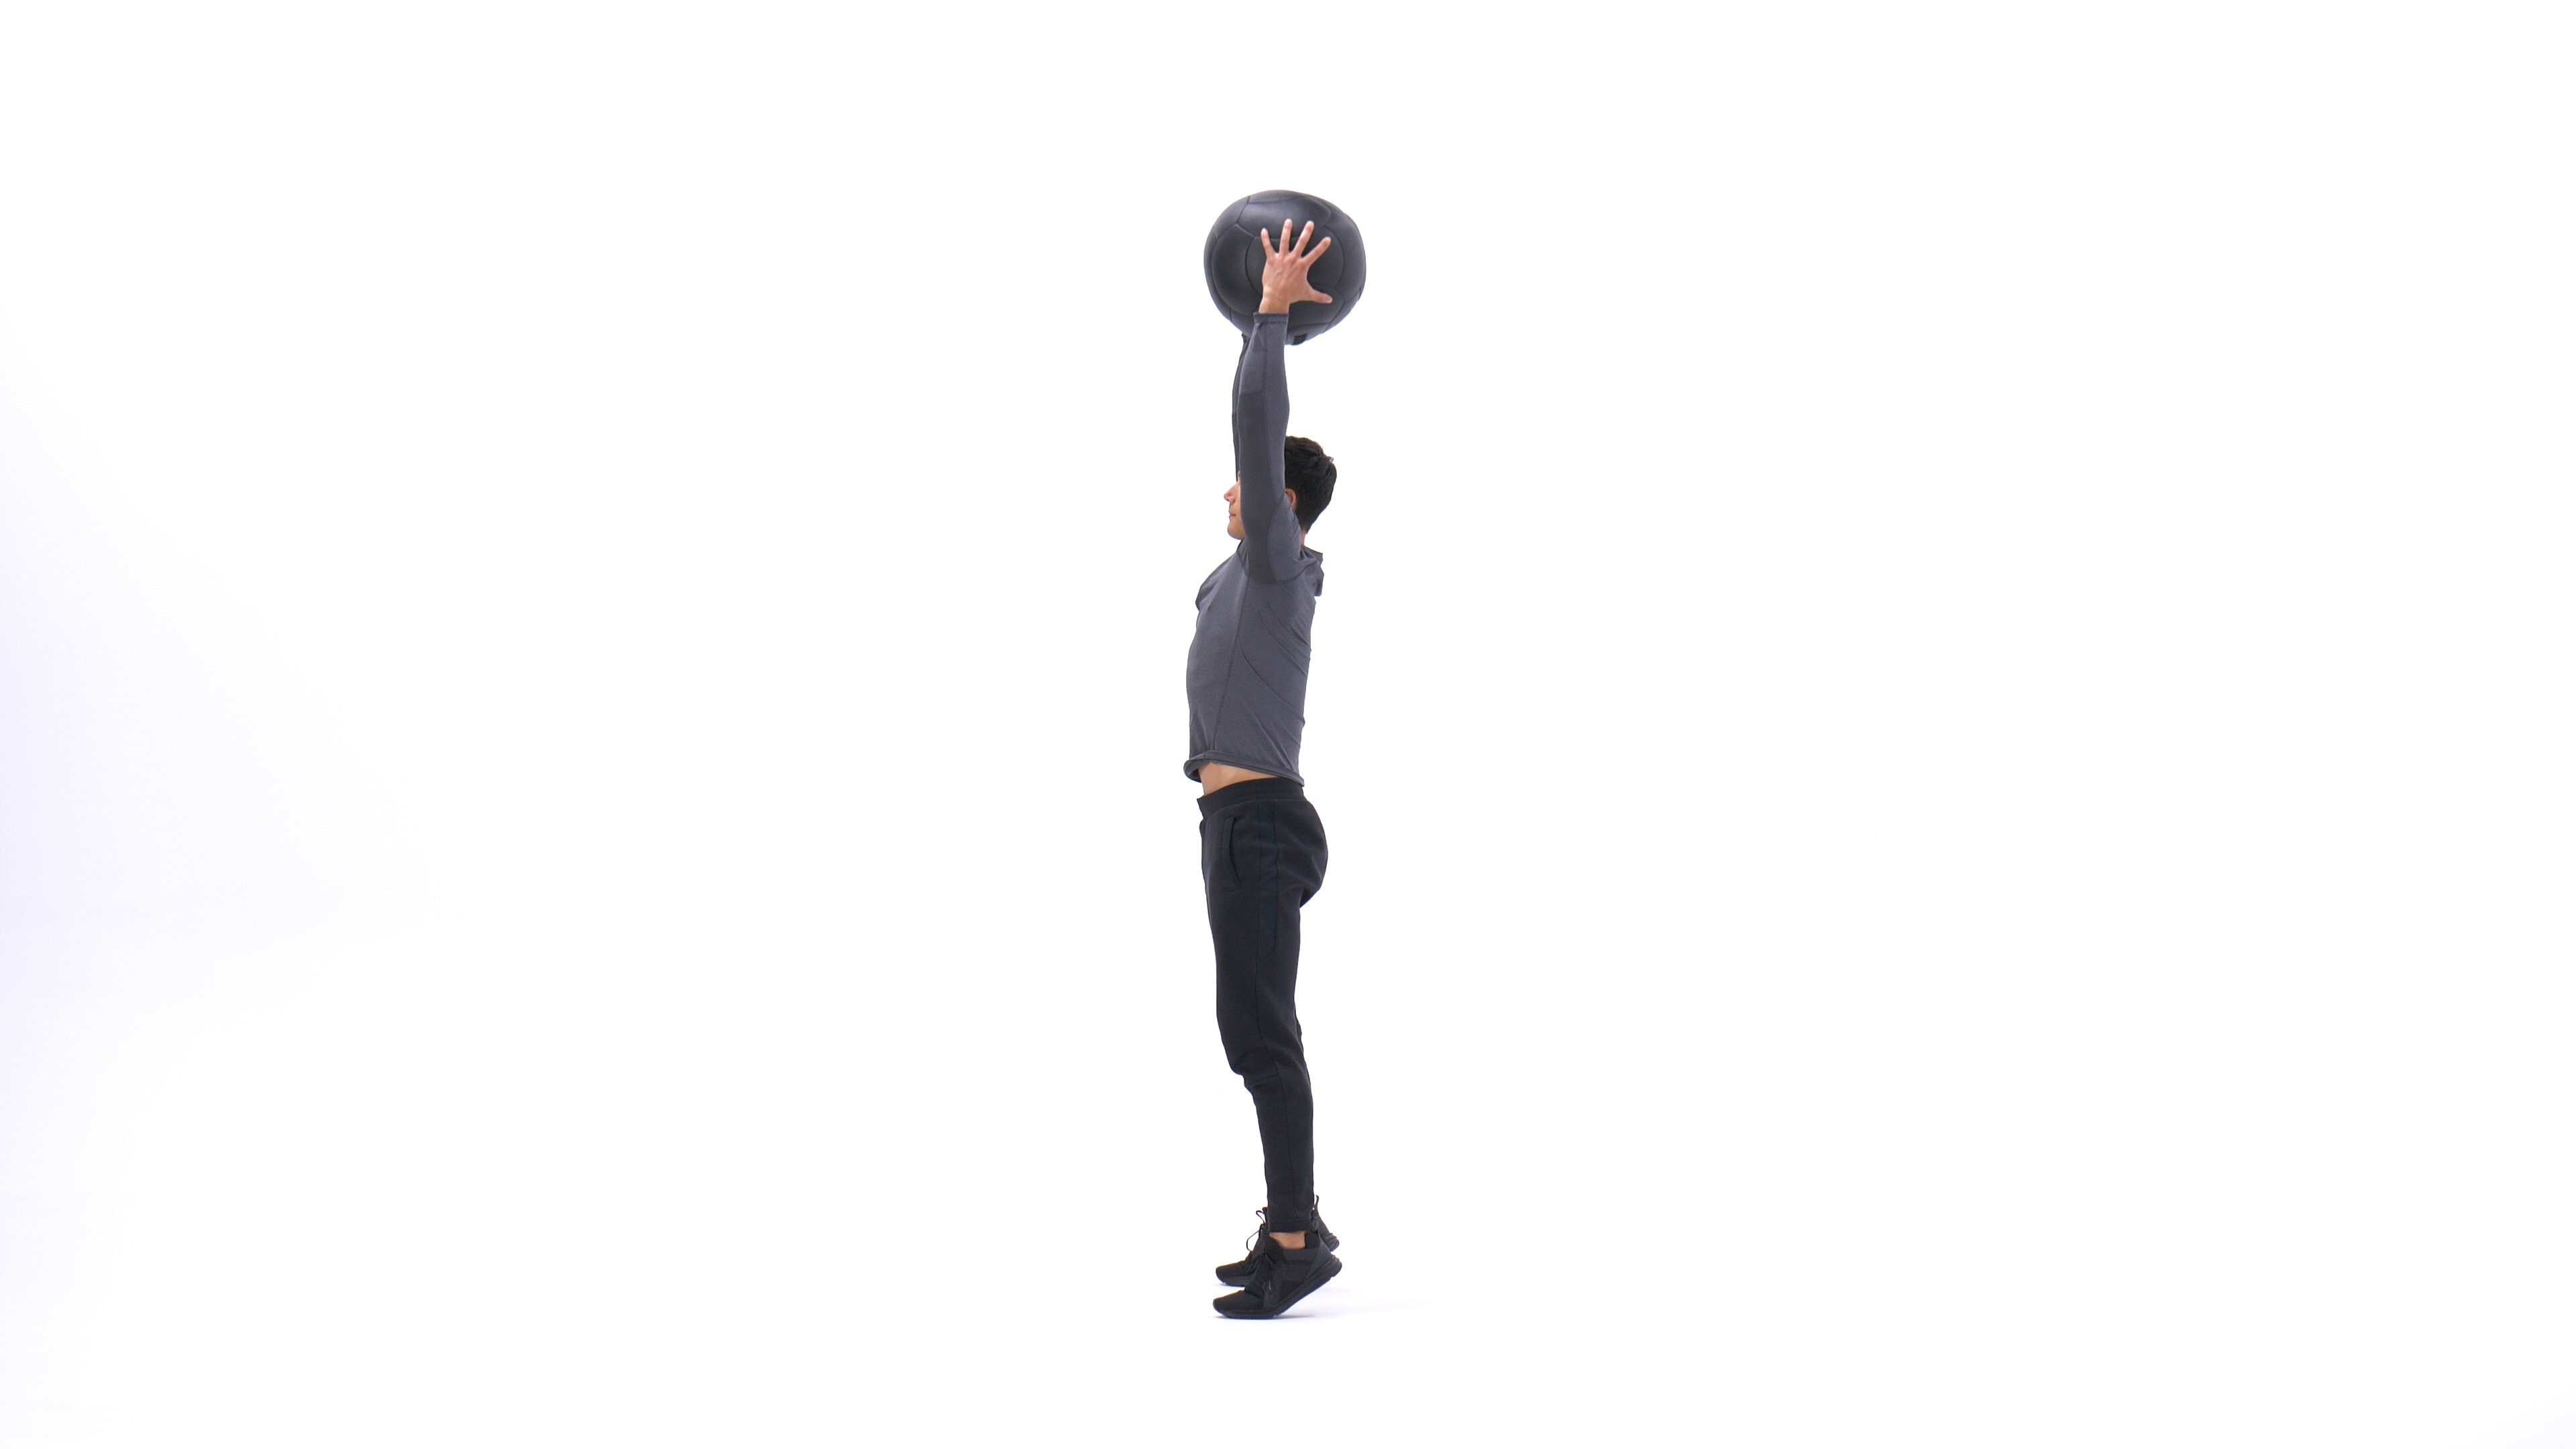 Medicine ball slam image